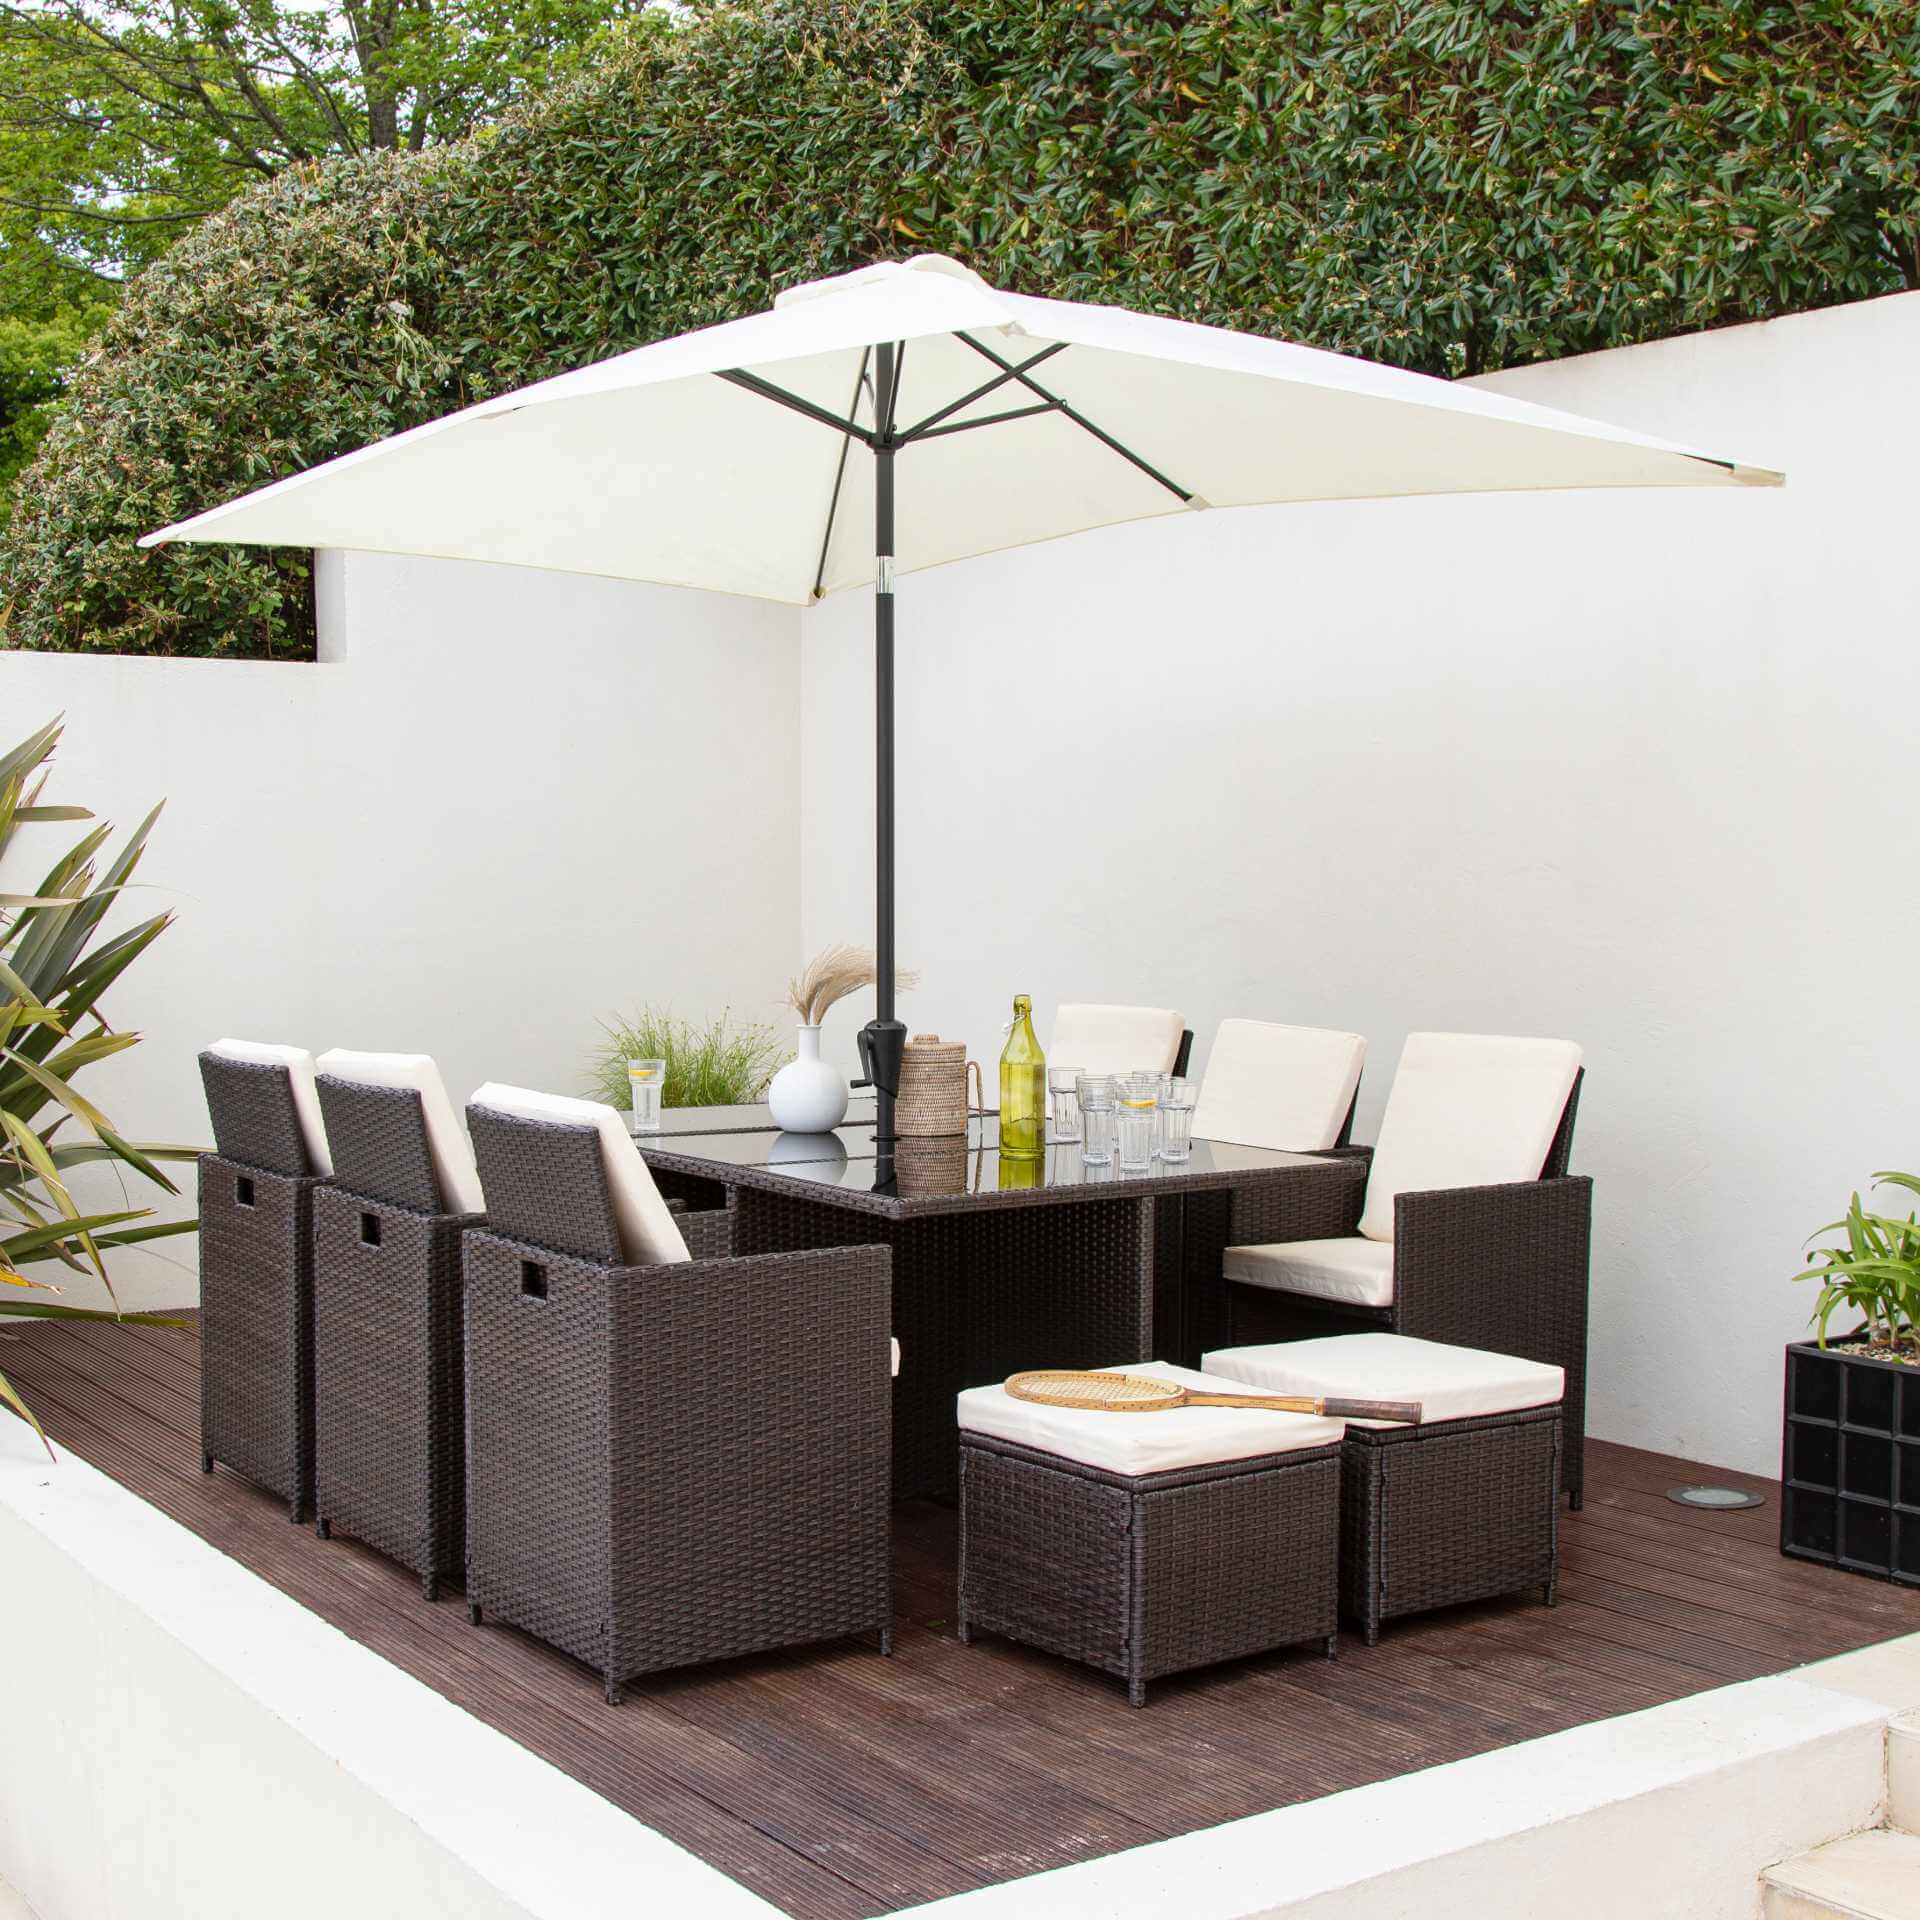 10 Seater Rattan Cube Outdoor Dining Set with Parasol - Mixed Brown Weave - Laura James